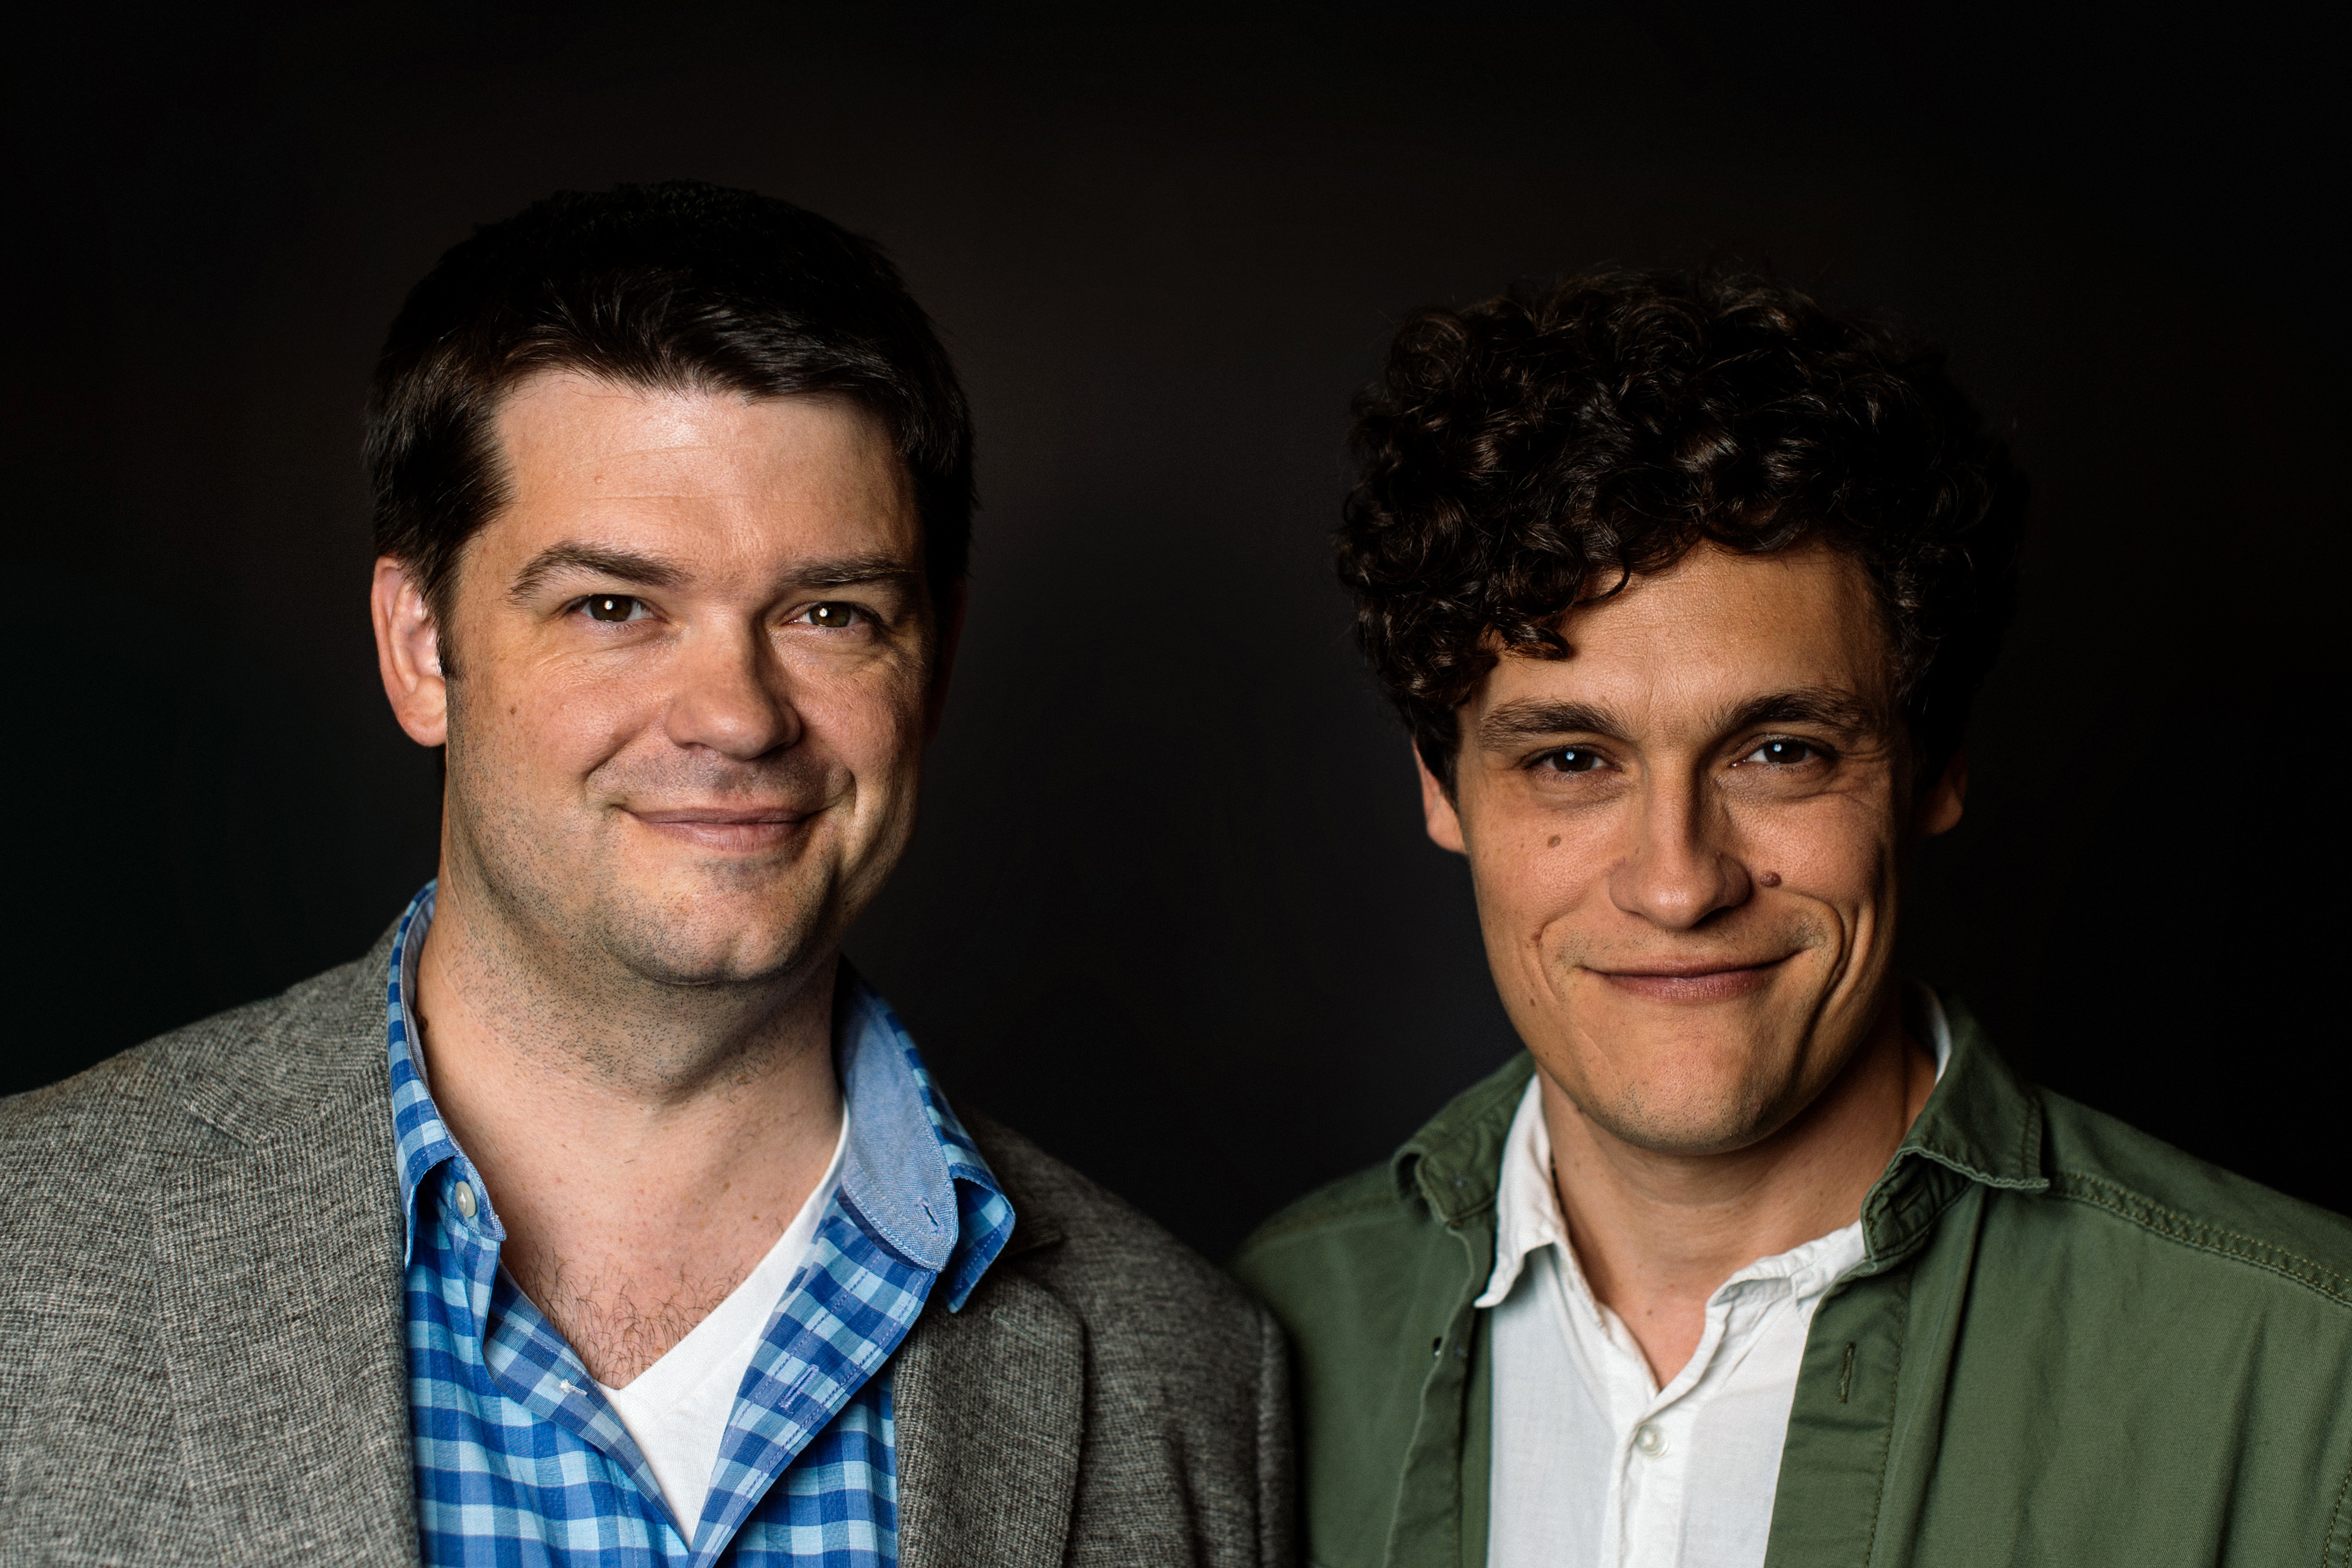 Chris Miller and Phil Lord pose for a portrait during the Star Wars Convention 2016 on July 15, 2016 in London, England.